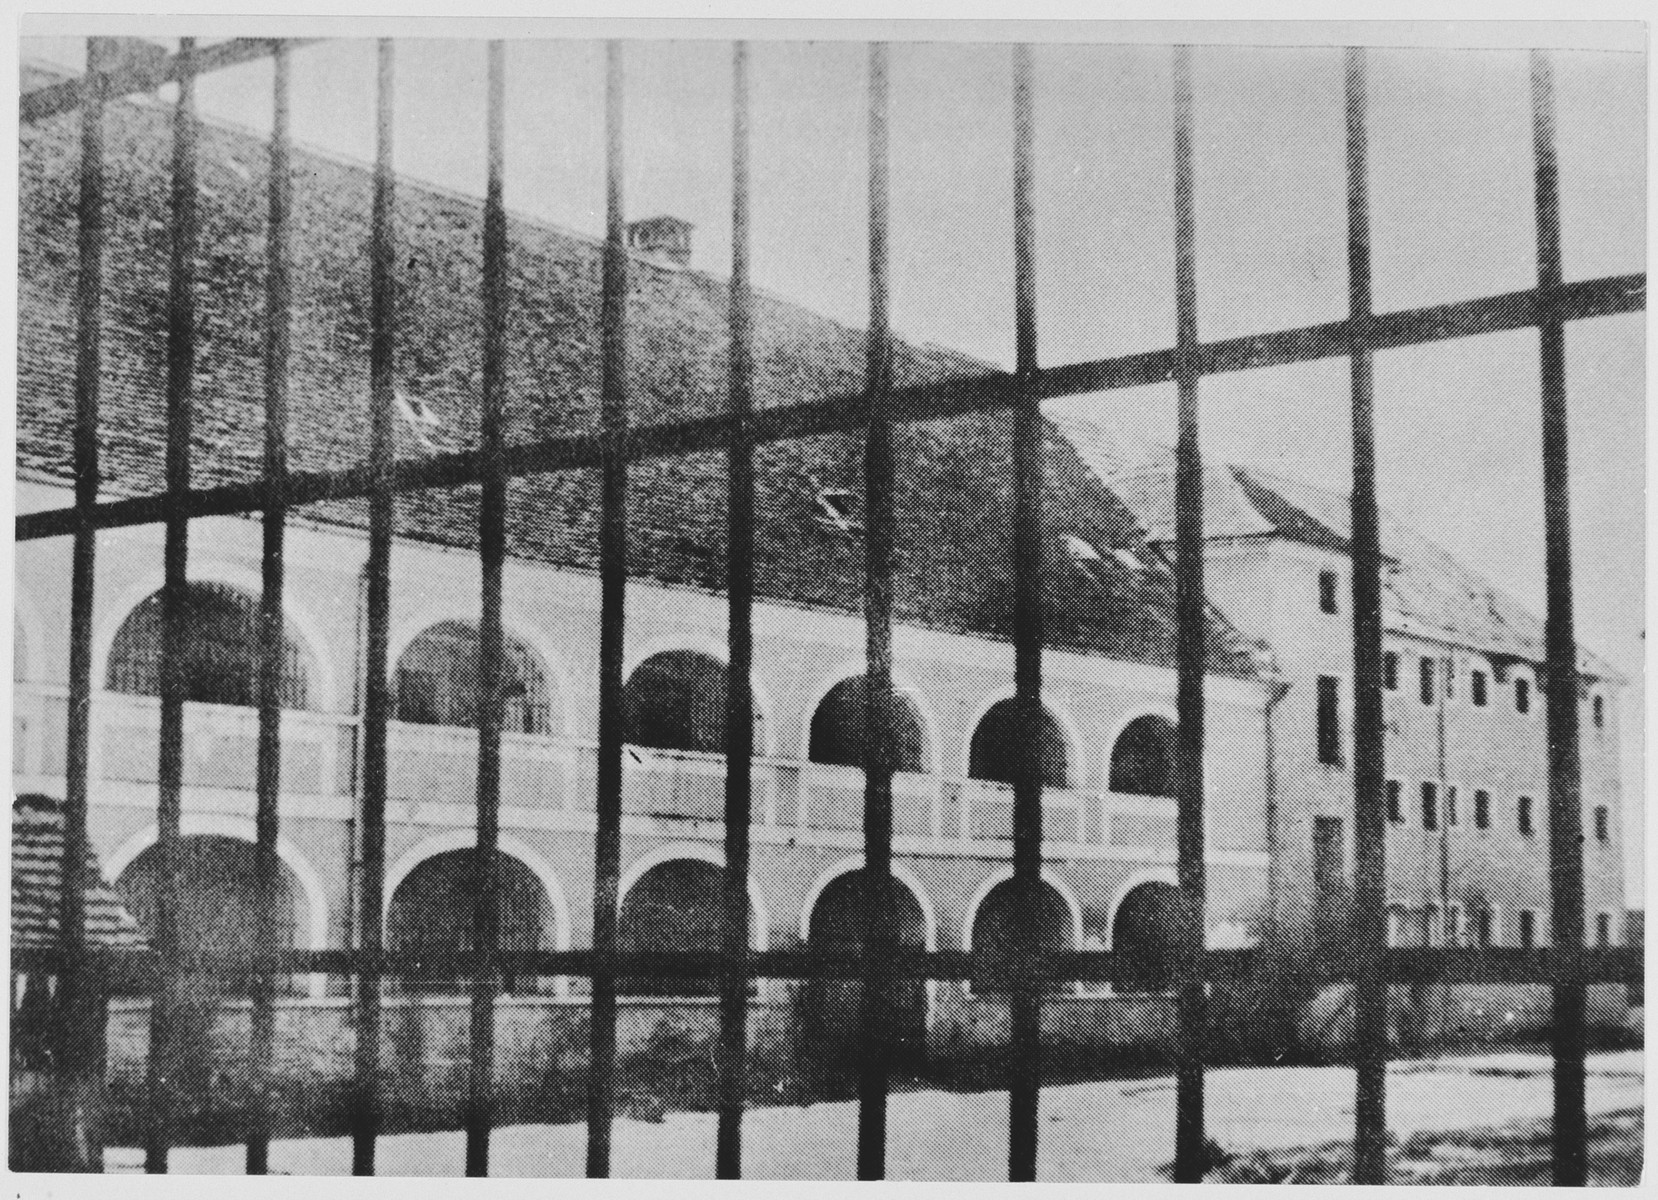 View through a tall fence of prisoner barracks in the men's camp at the Stara Gradiska concentration camp.  At the left are quarters for Jewish and Serbian inmates; at the right, for Croats, Muslims and Catholics.